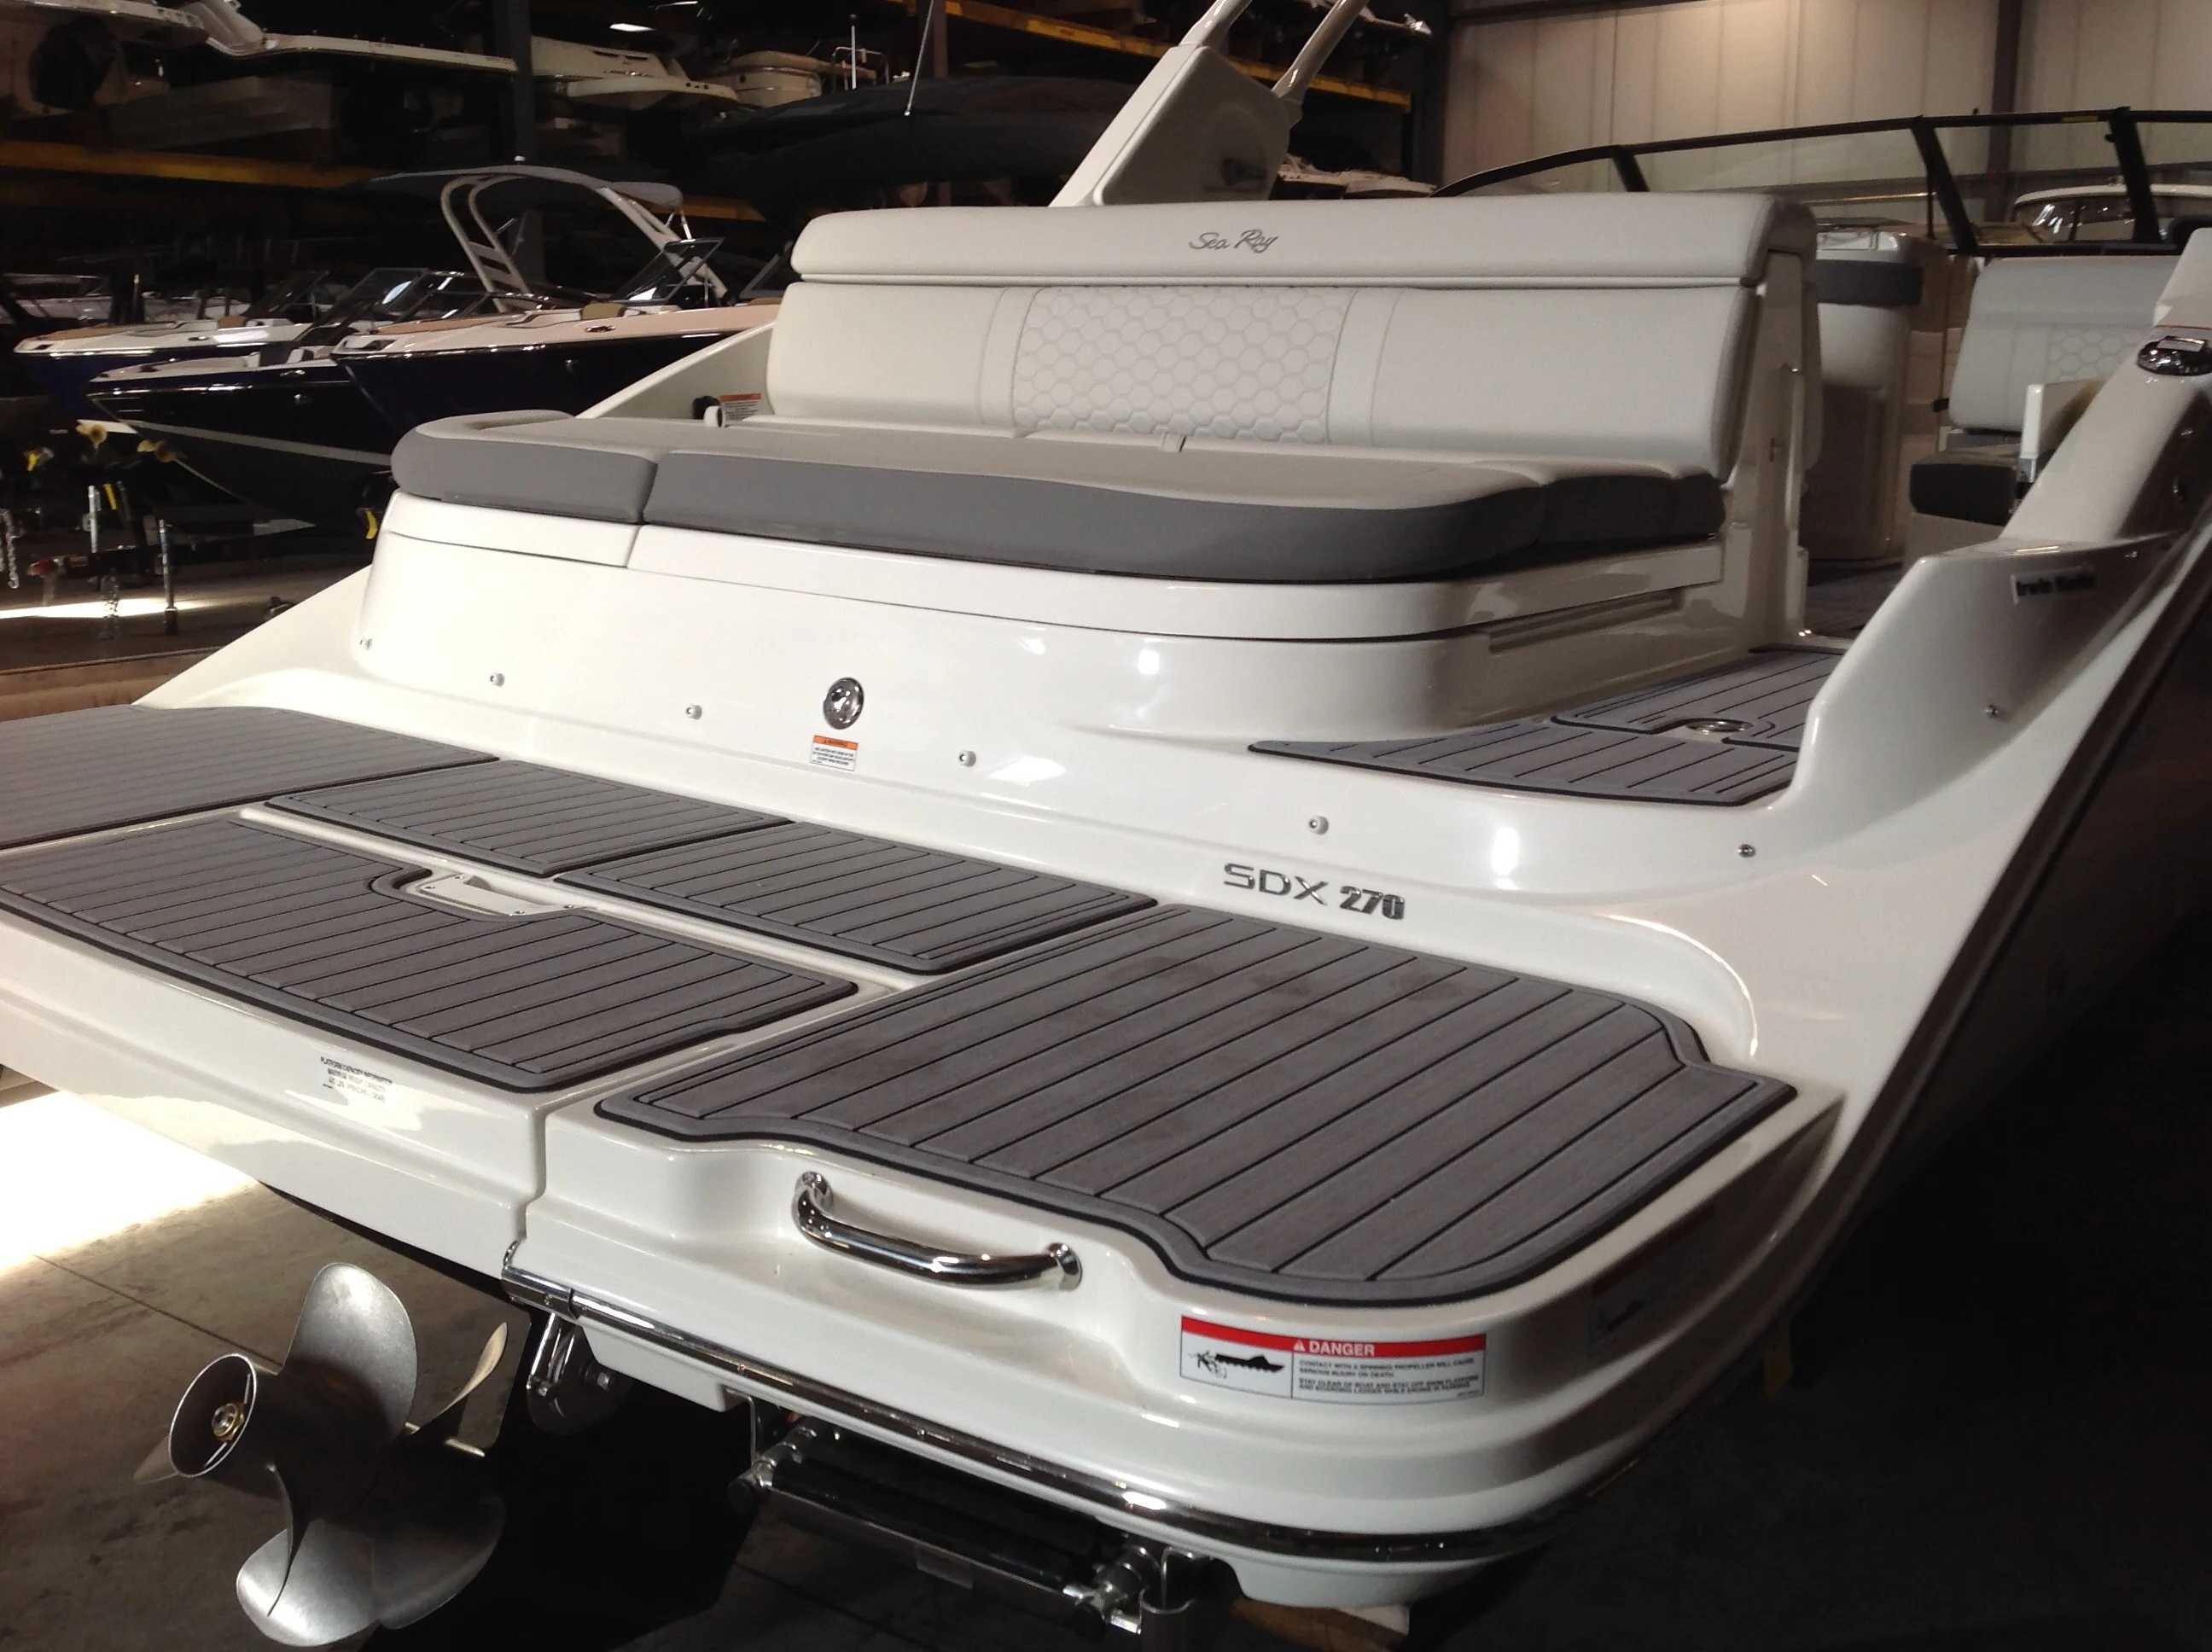 2021 Sea Ray boat for sale, model of the boat is 270 SDX & Image # 18 of 21